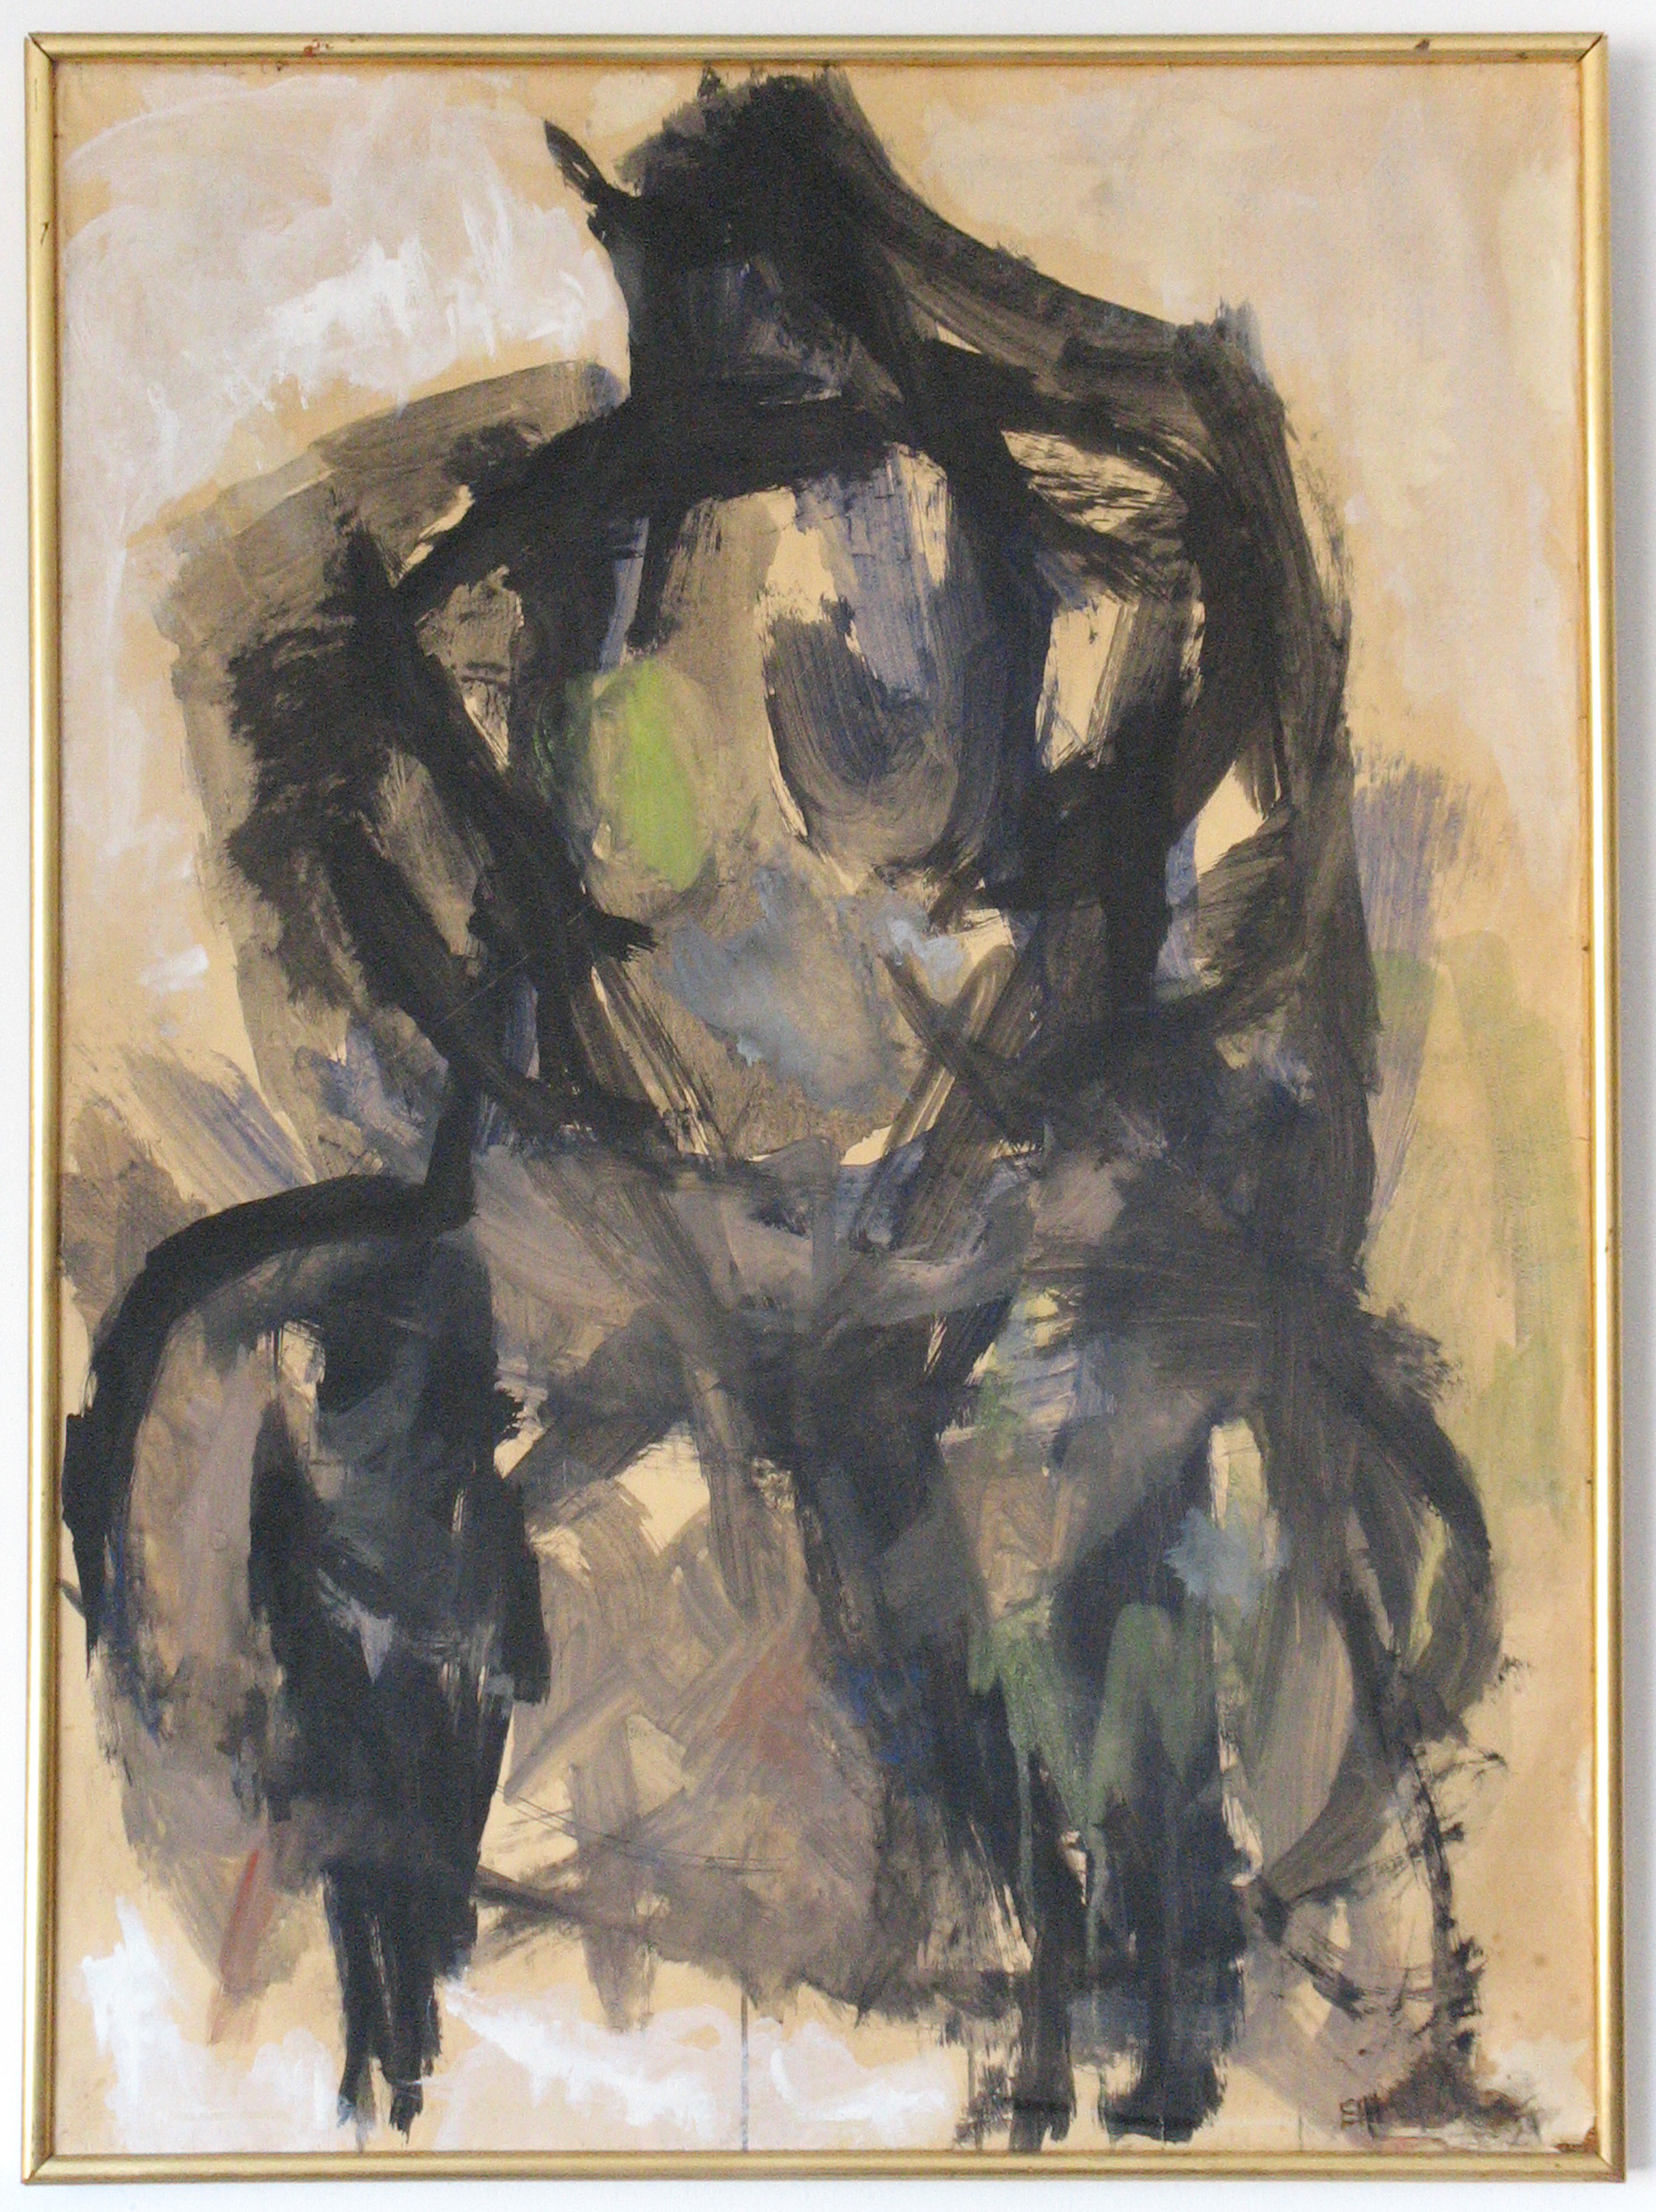 Painting: Seated Figure / Torso (#13) by Eleanor Hilowitz (1913 - 2007).